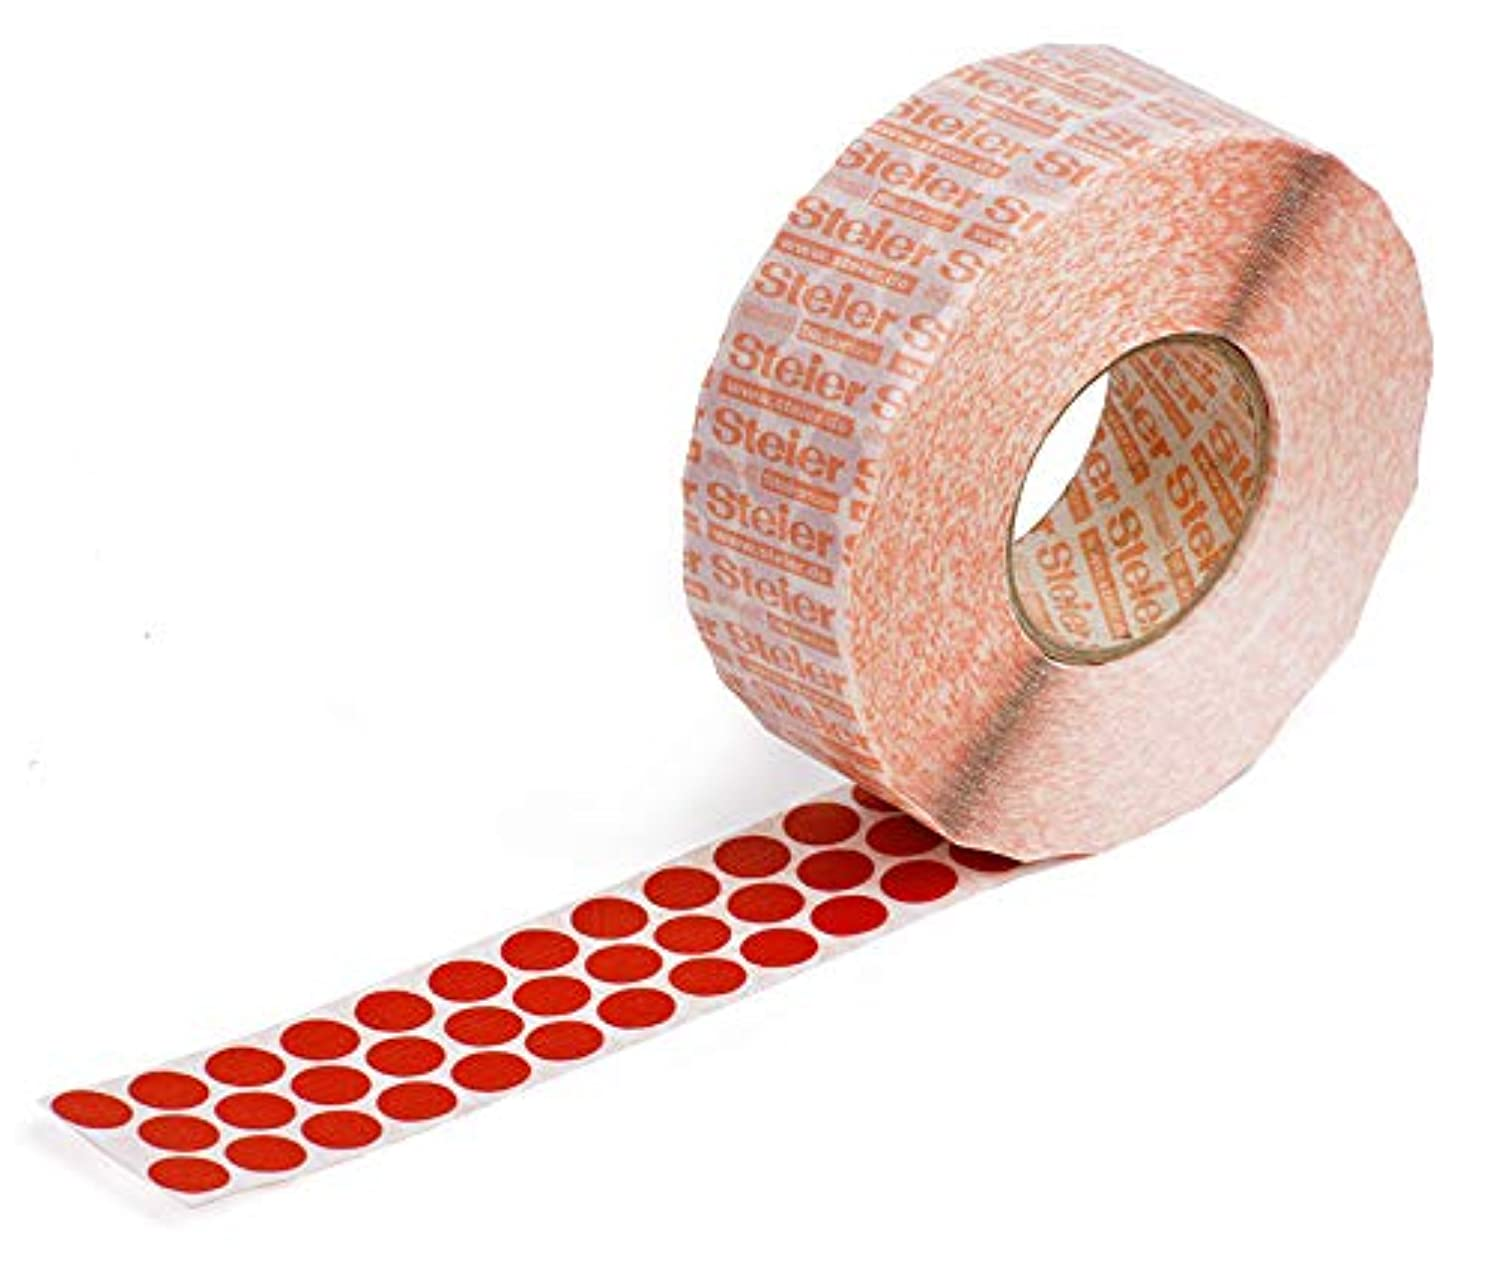 STEIER 3241220 Red Marking Dots, Strong Adhesive Dots, Coloured Fabric Stickers, 12 mm, 6000 Pieces (Round, Mini & Removable), Diameter